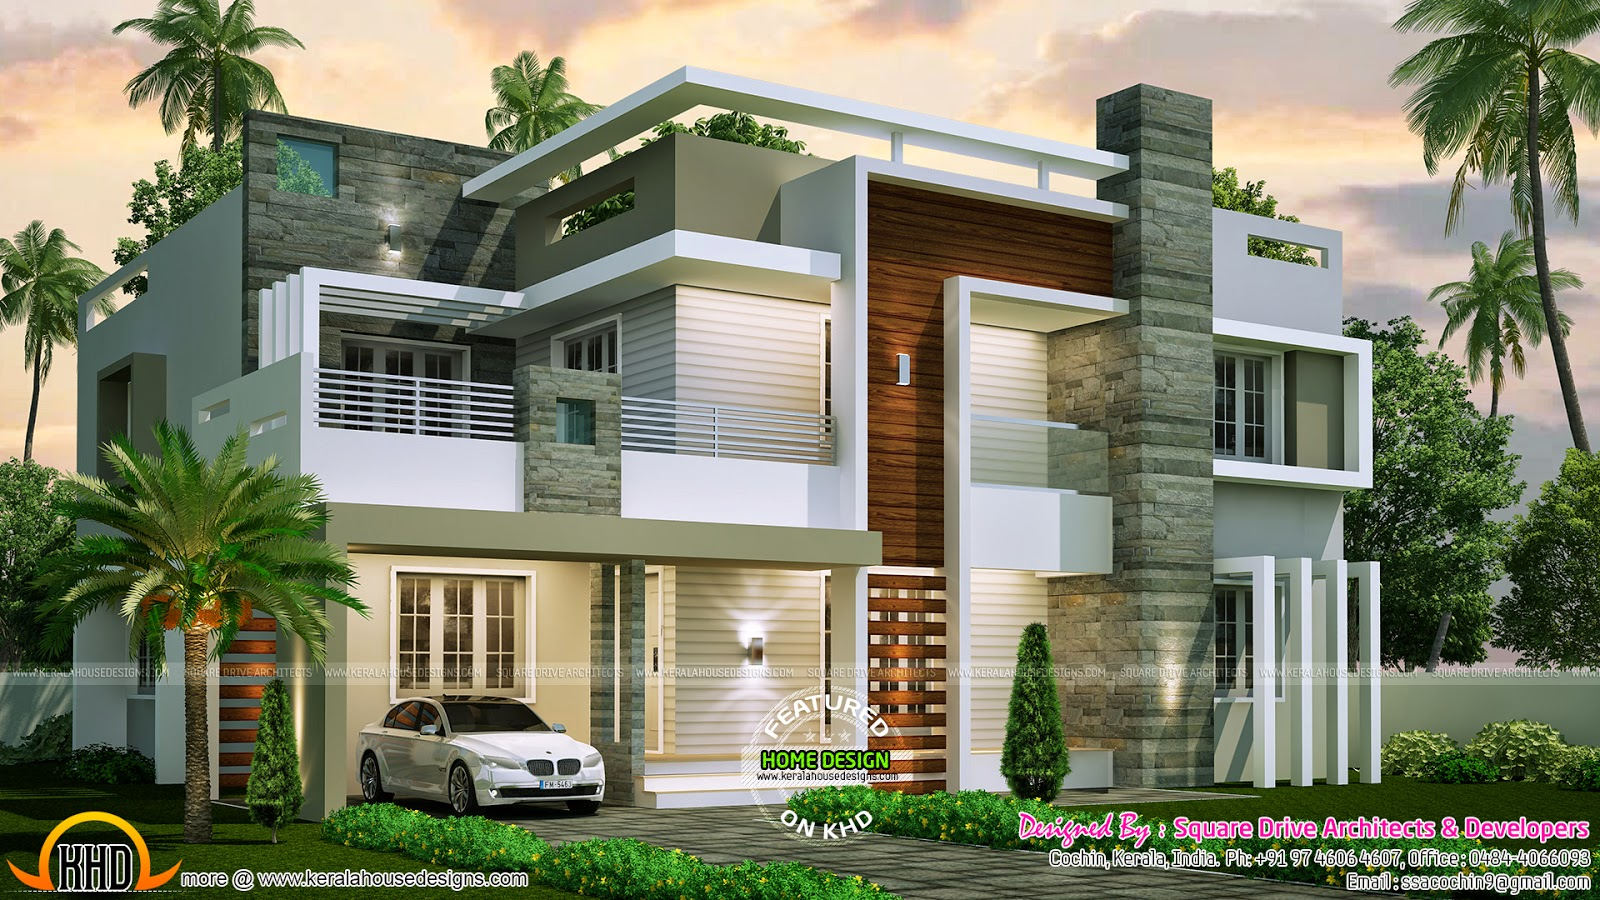 4 bedroom contemporary home design kerala home design for Www homedesign com